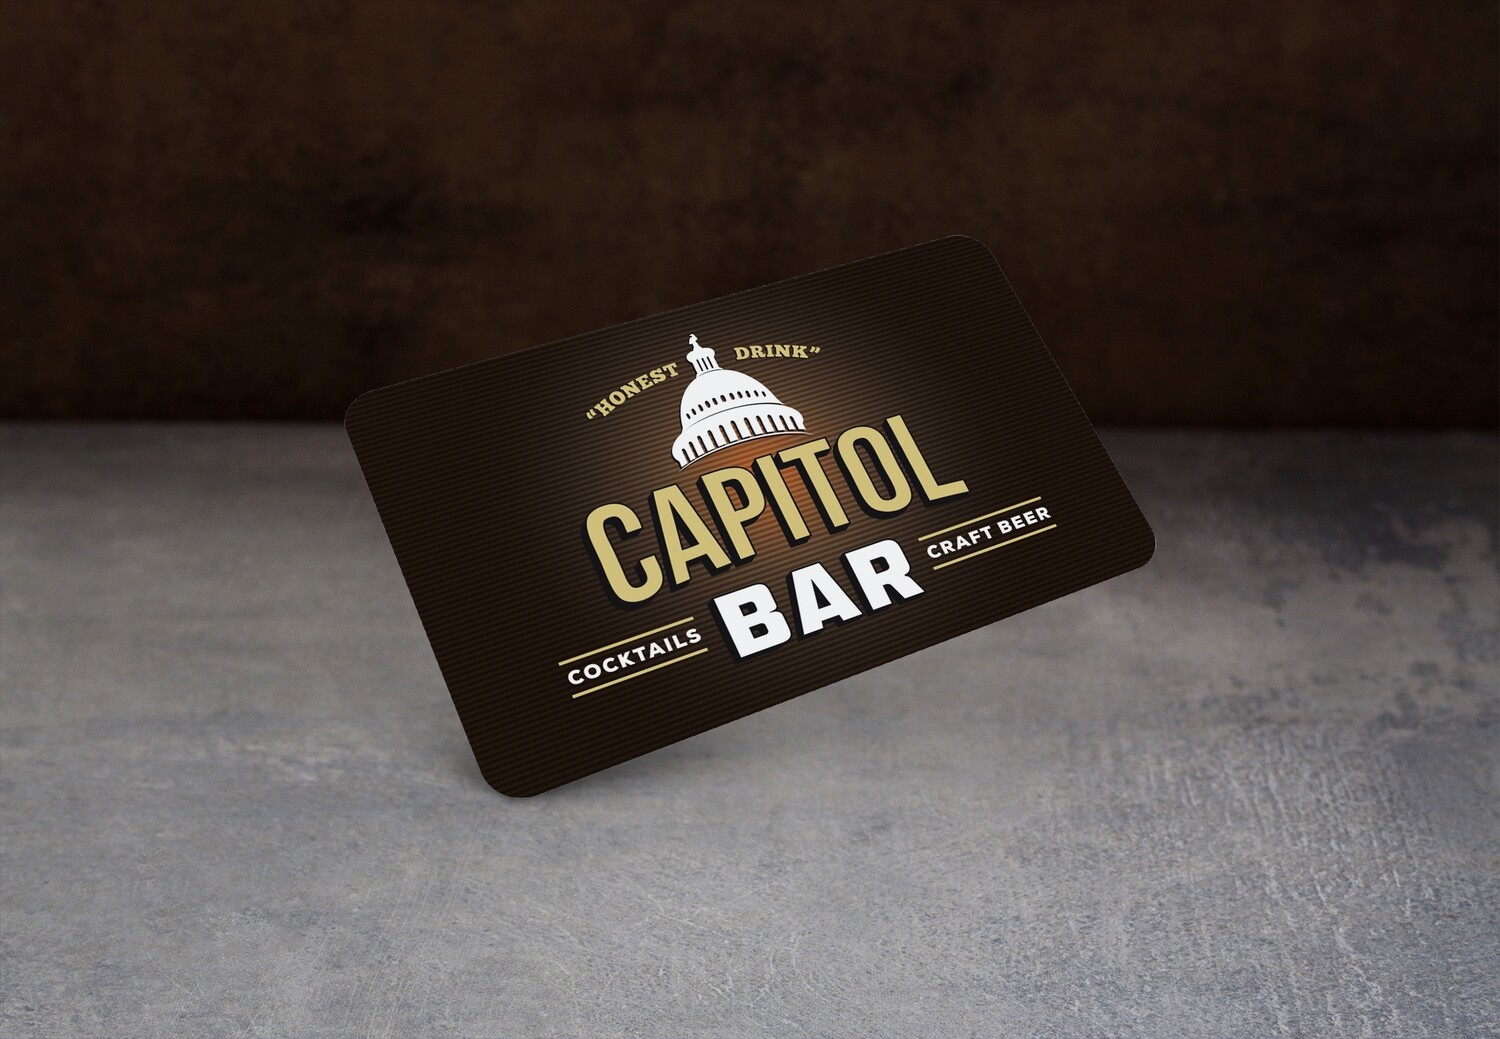 Buy 1 Get 1 Free Gifts Cards • $10+